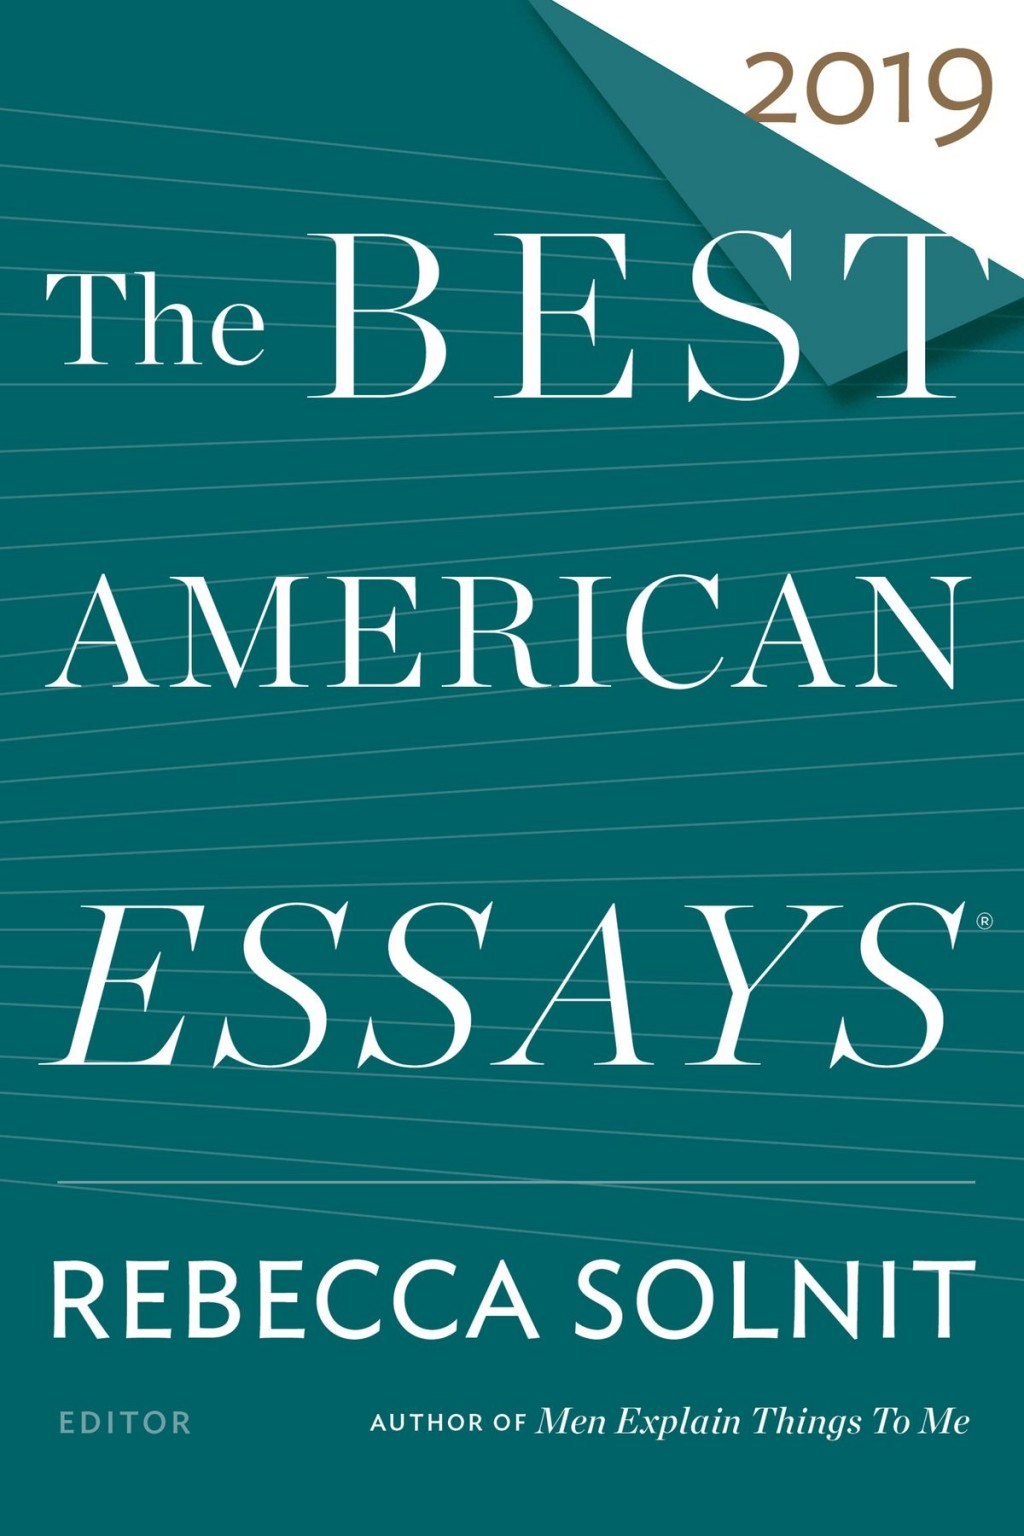 007 The Best American Essays Essay Striking 2017 Pdf Submissions 2019 Of Century Table Contents Large